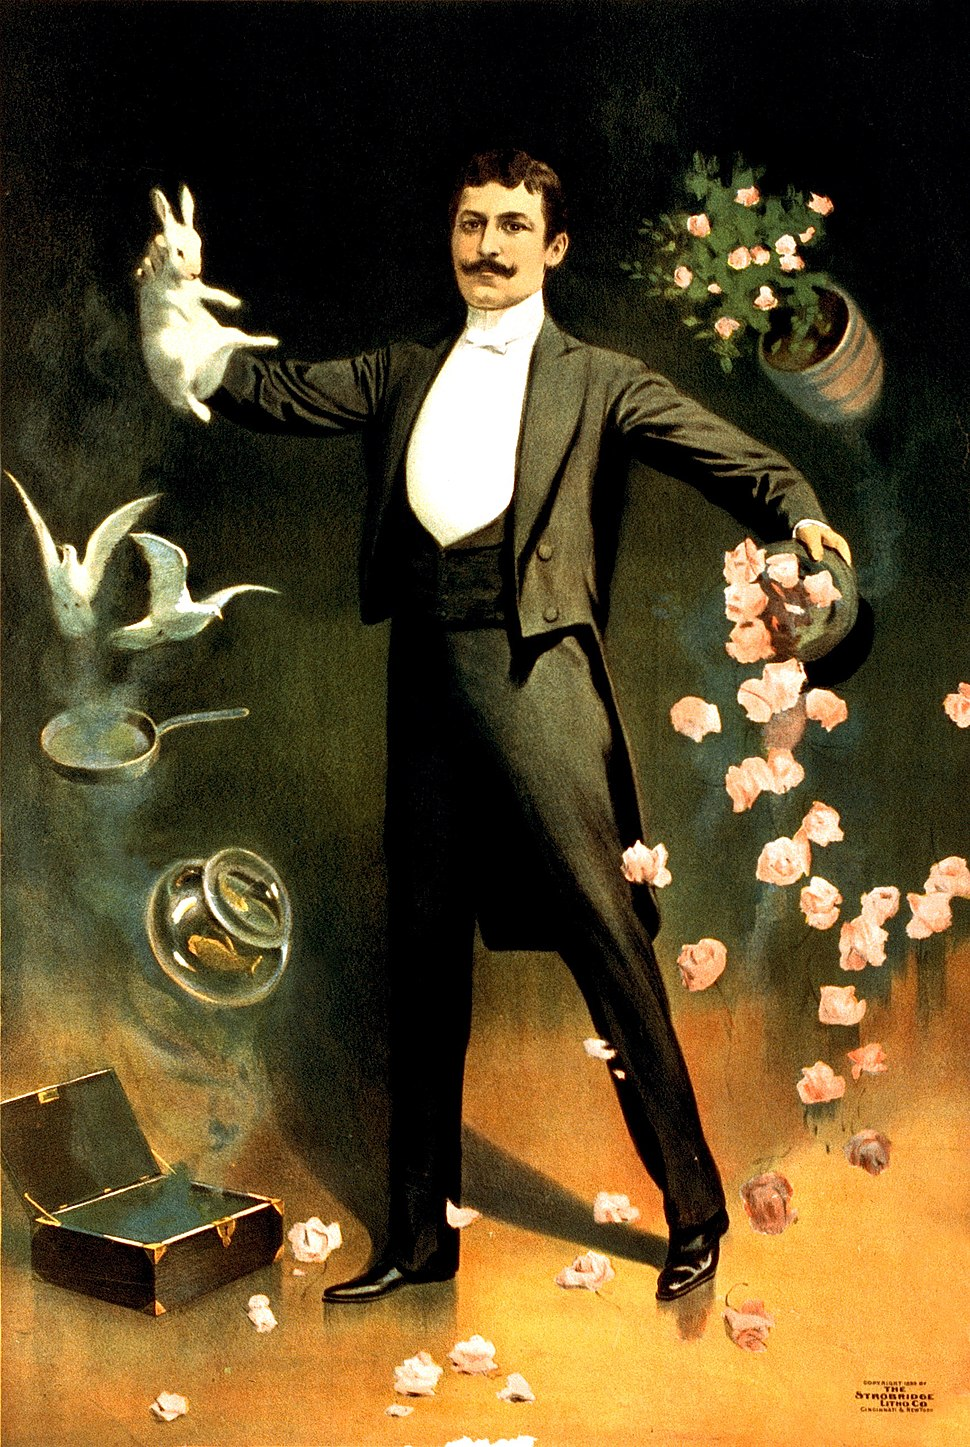 Zan Zig performing with rabbit and roses, magician poster, 1899-2